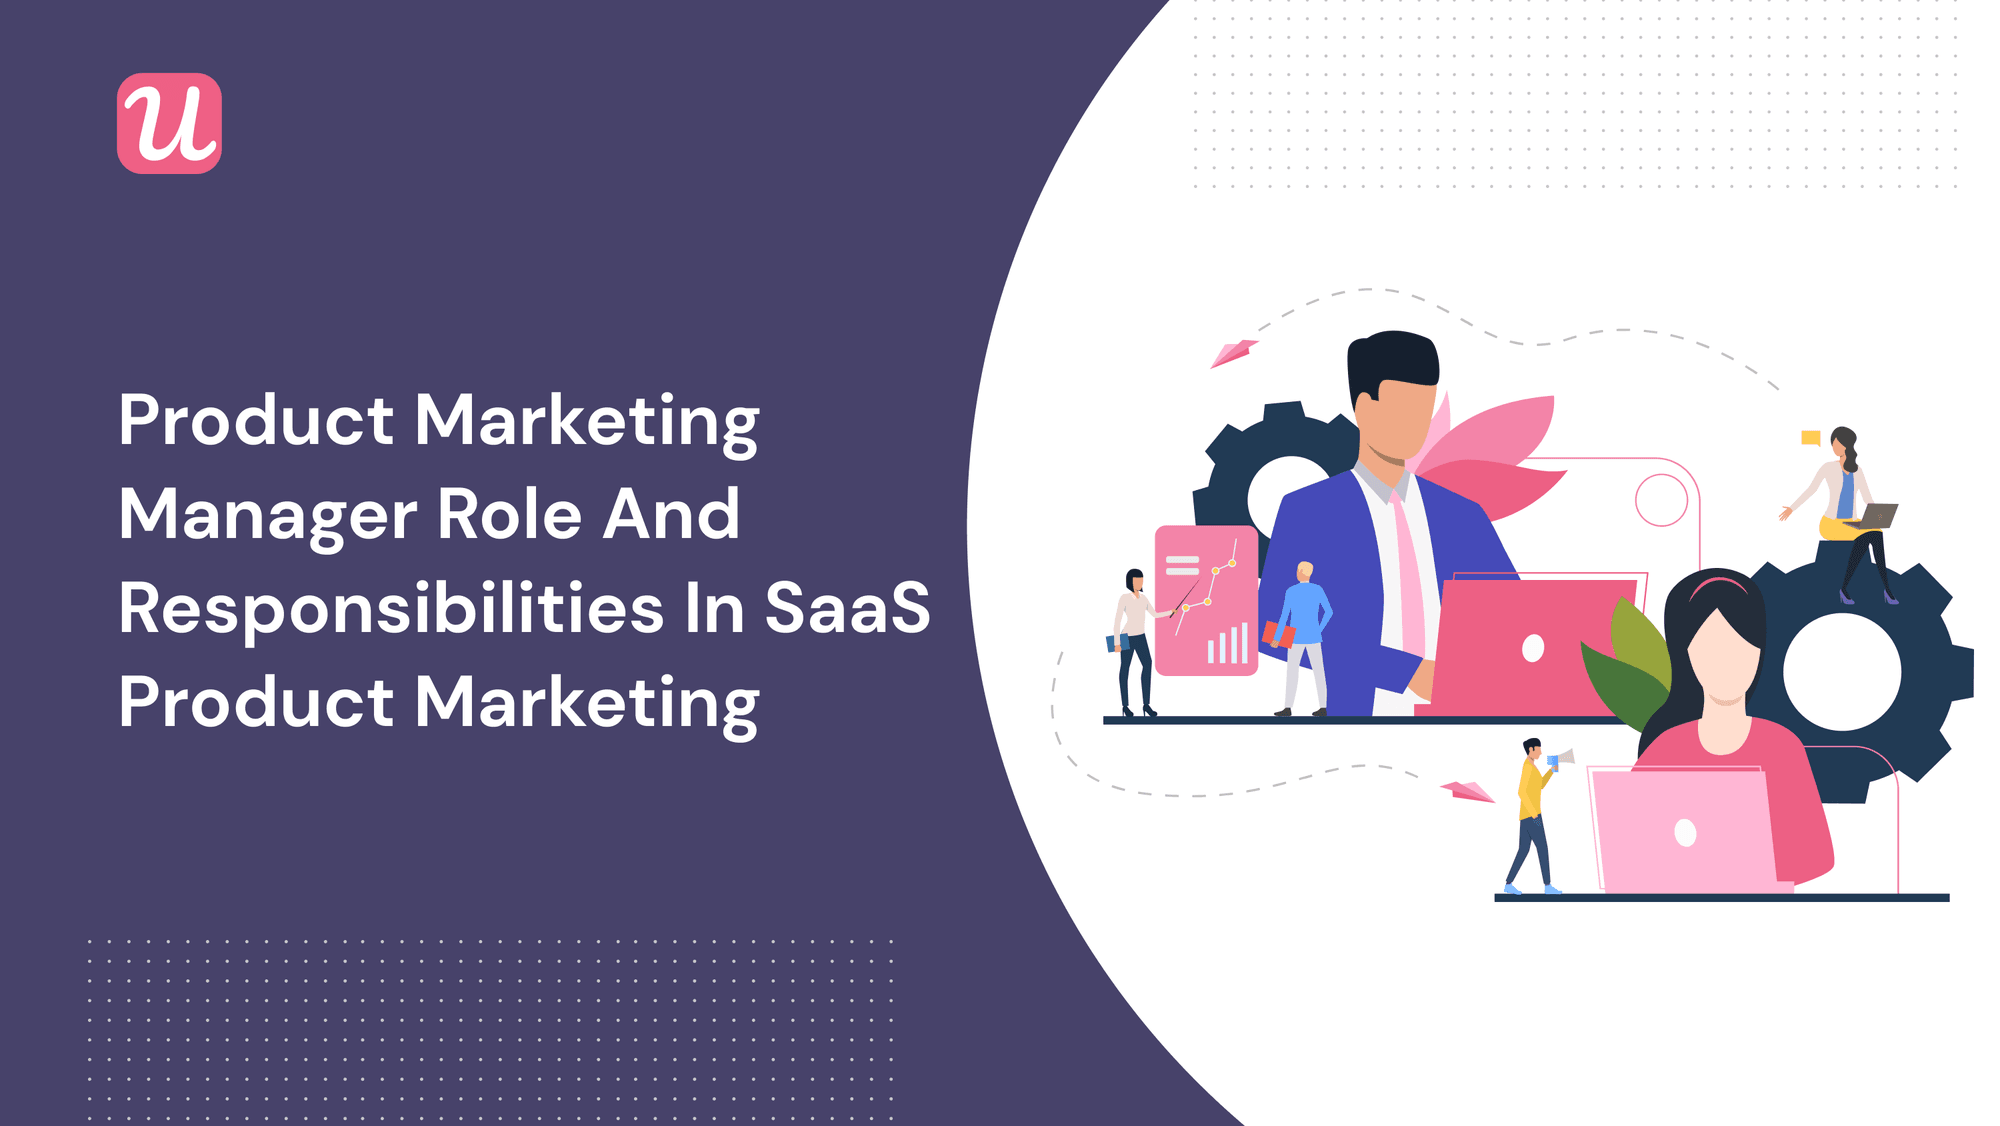 What You Need To Know About The Product Marketing Manager Role and Responsibilities